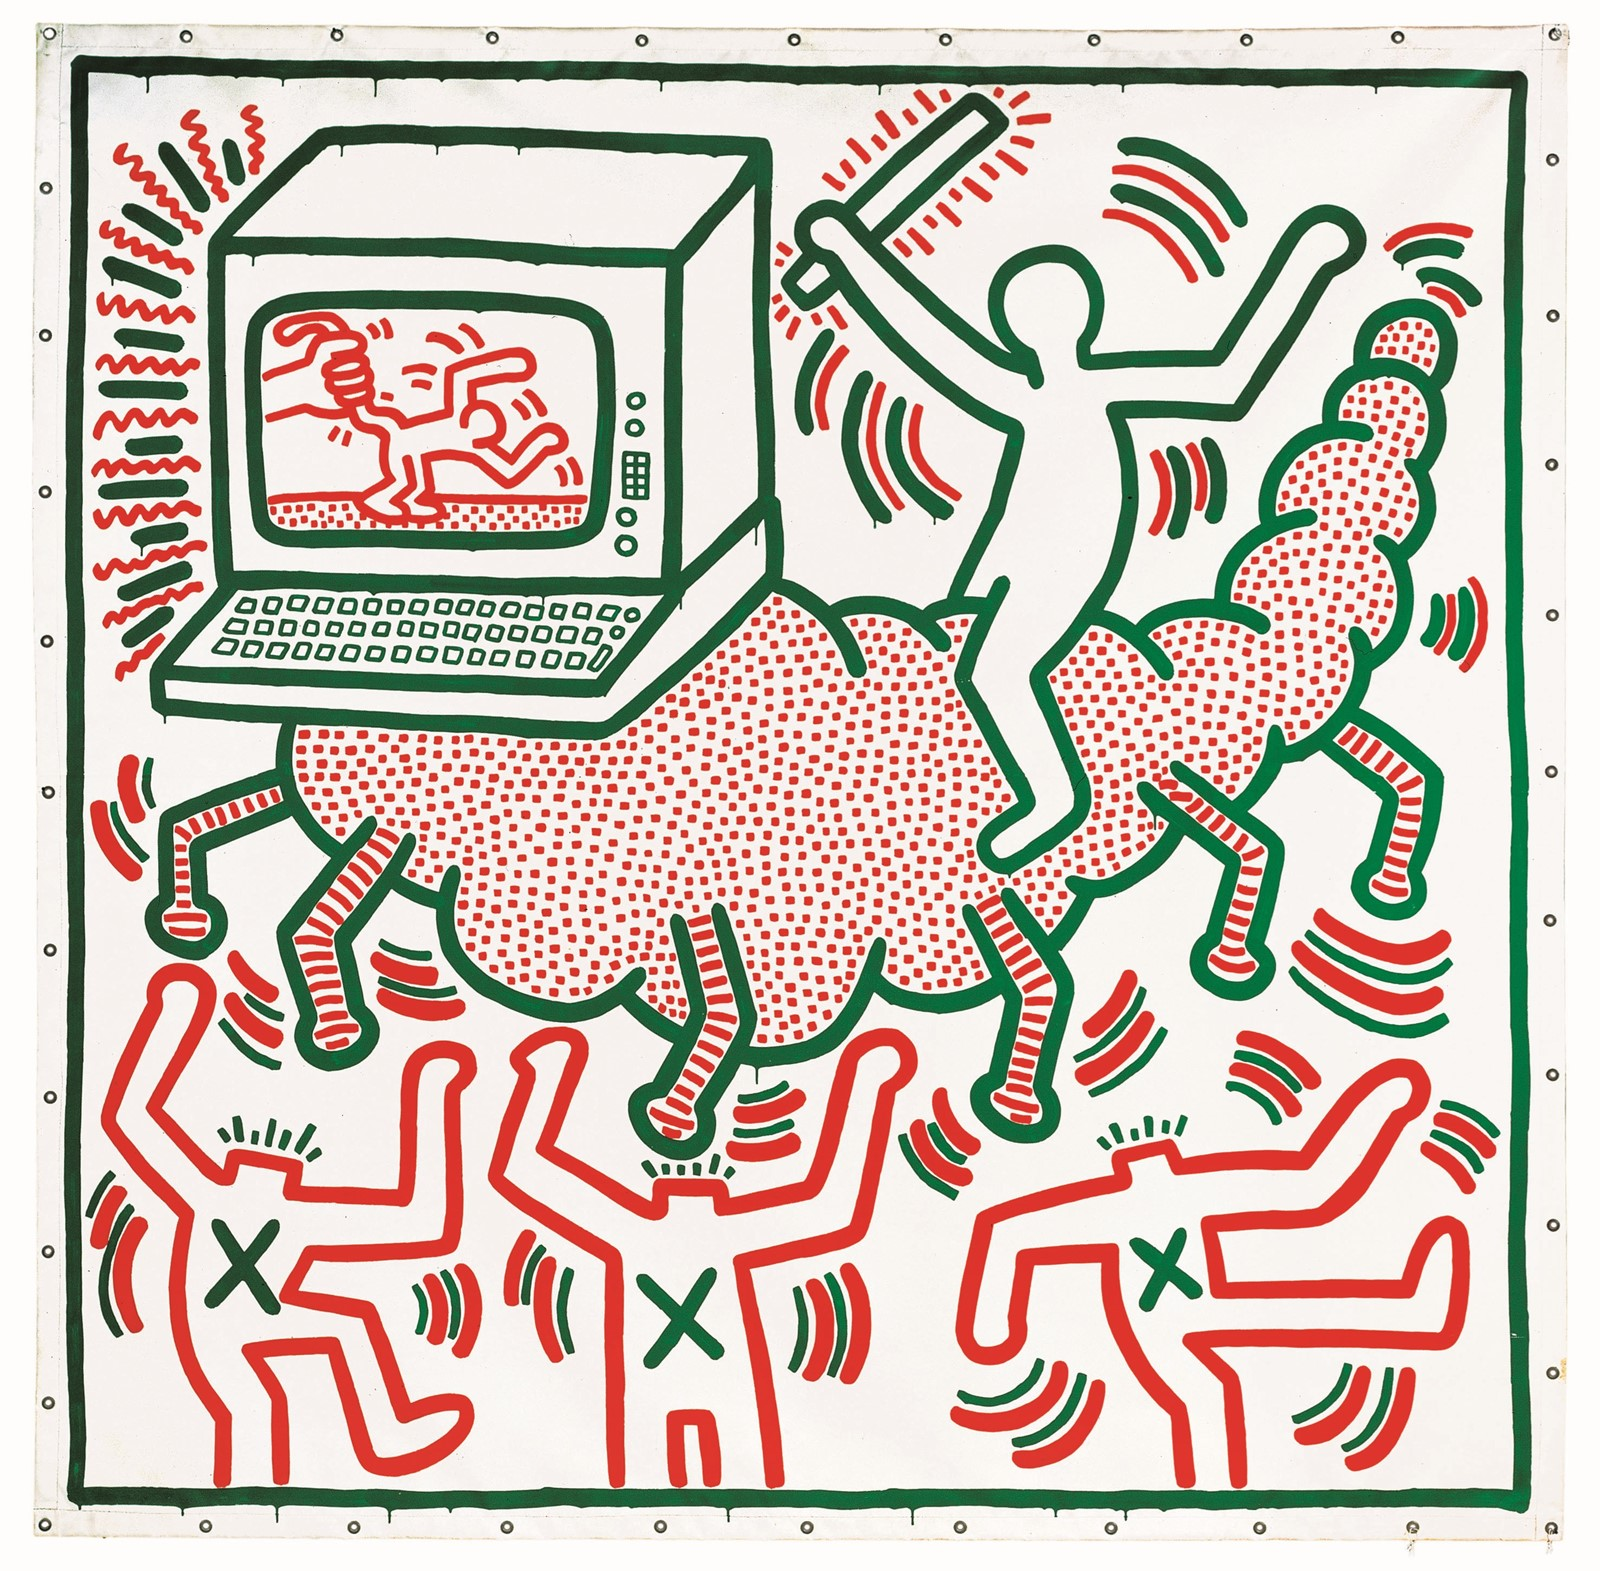 Keith Haring, Tate Liverpool 2019